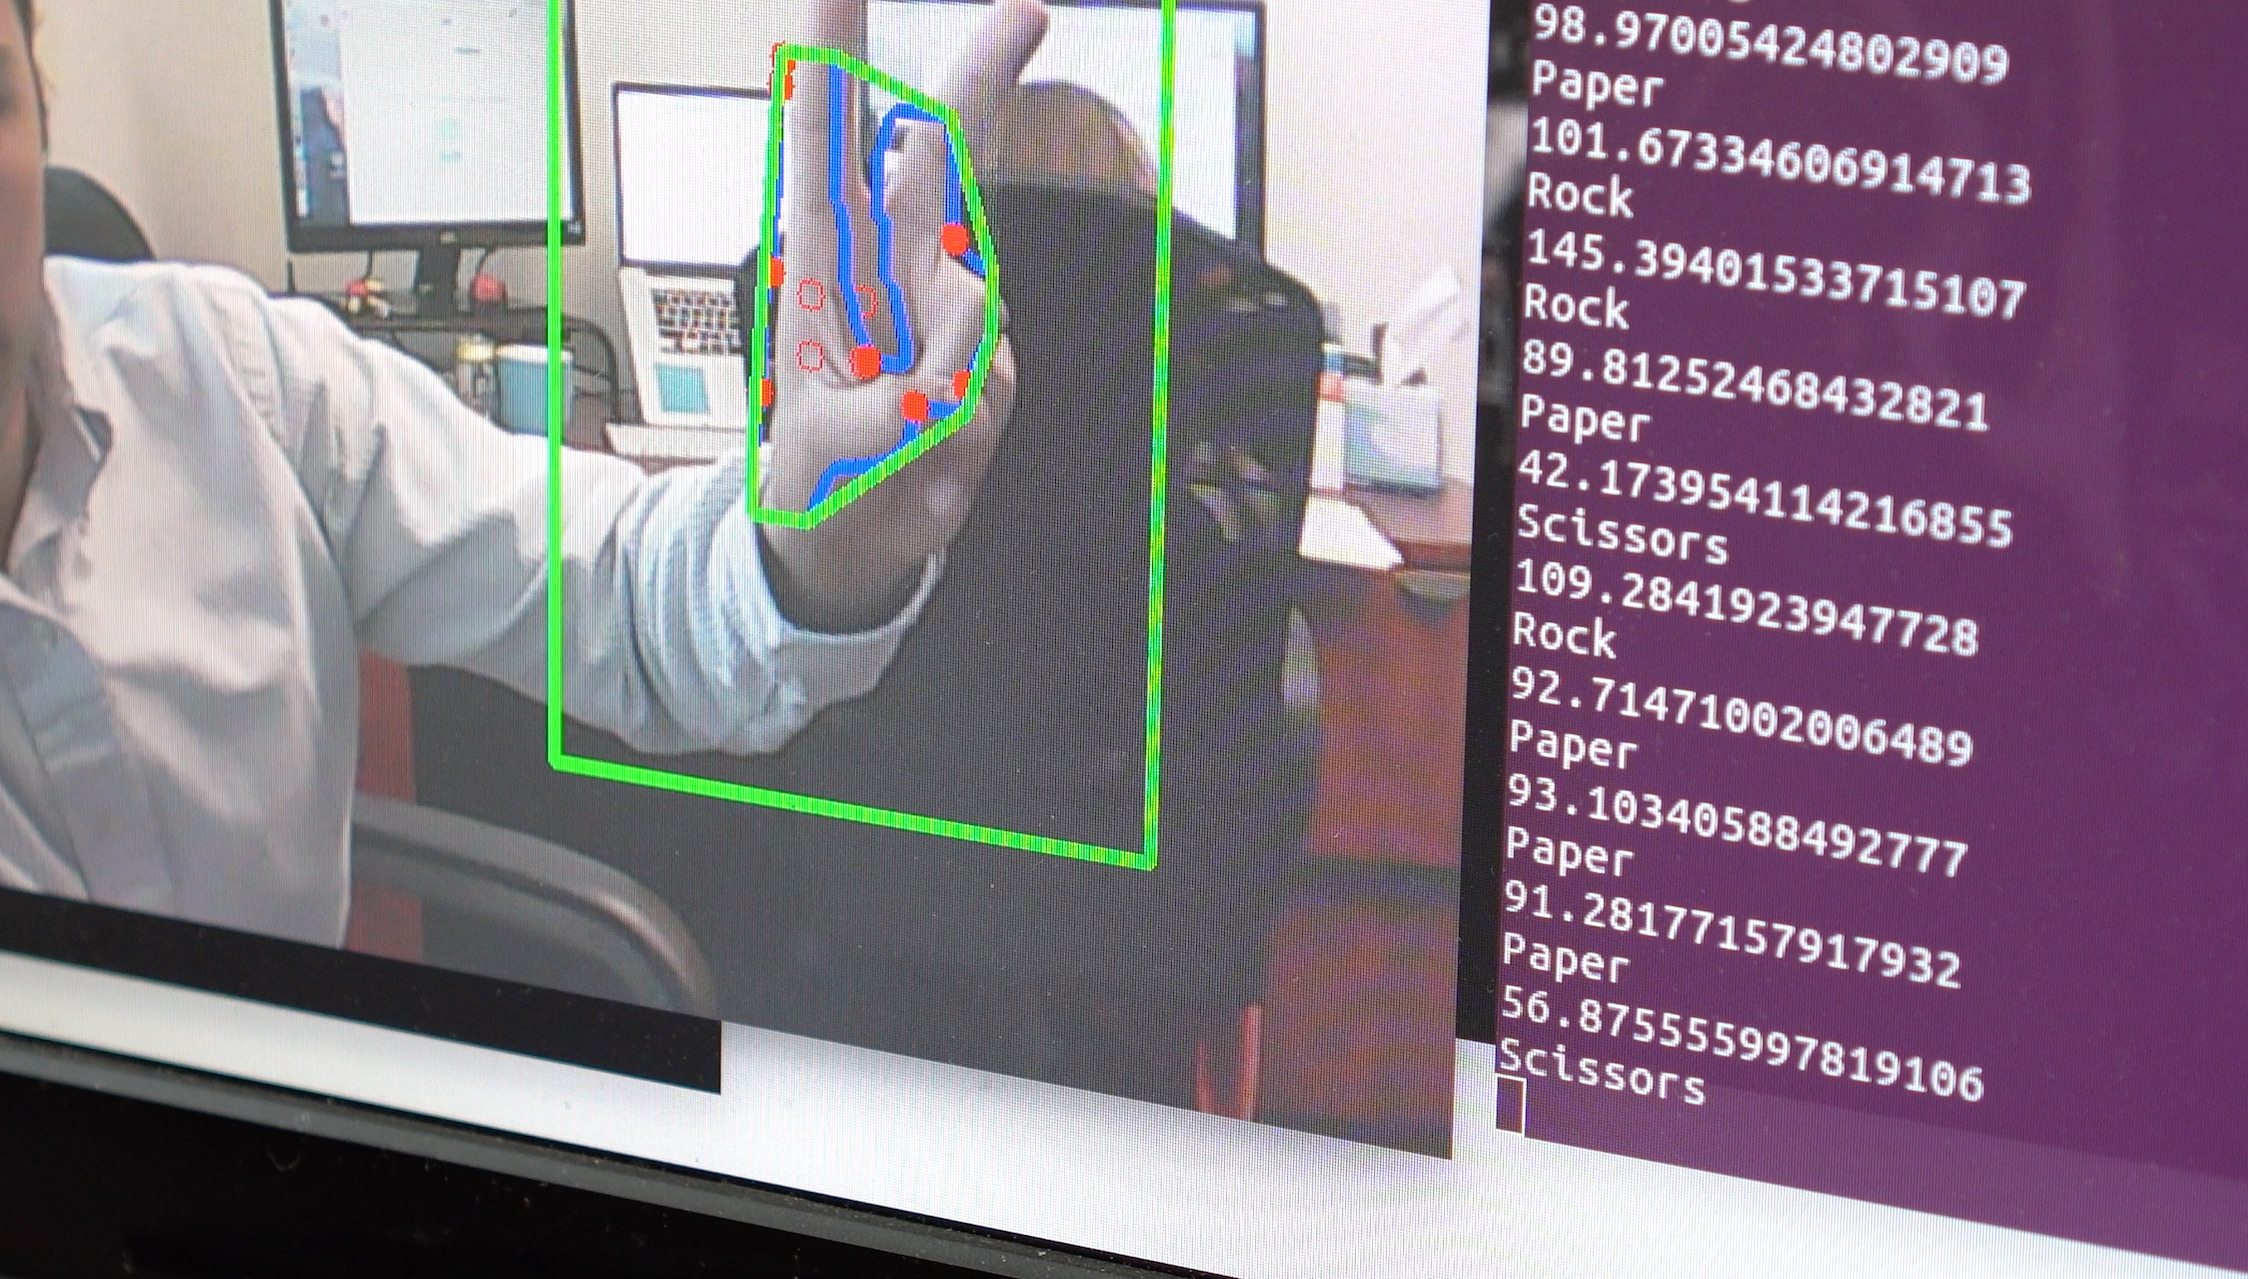 computer vision recognizing a hand making a victory sign